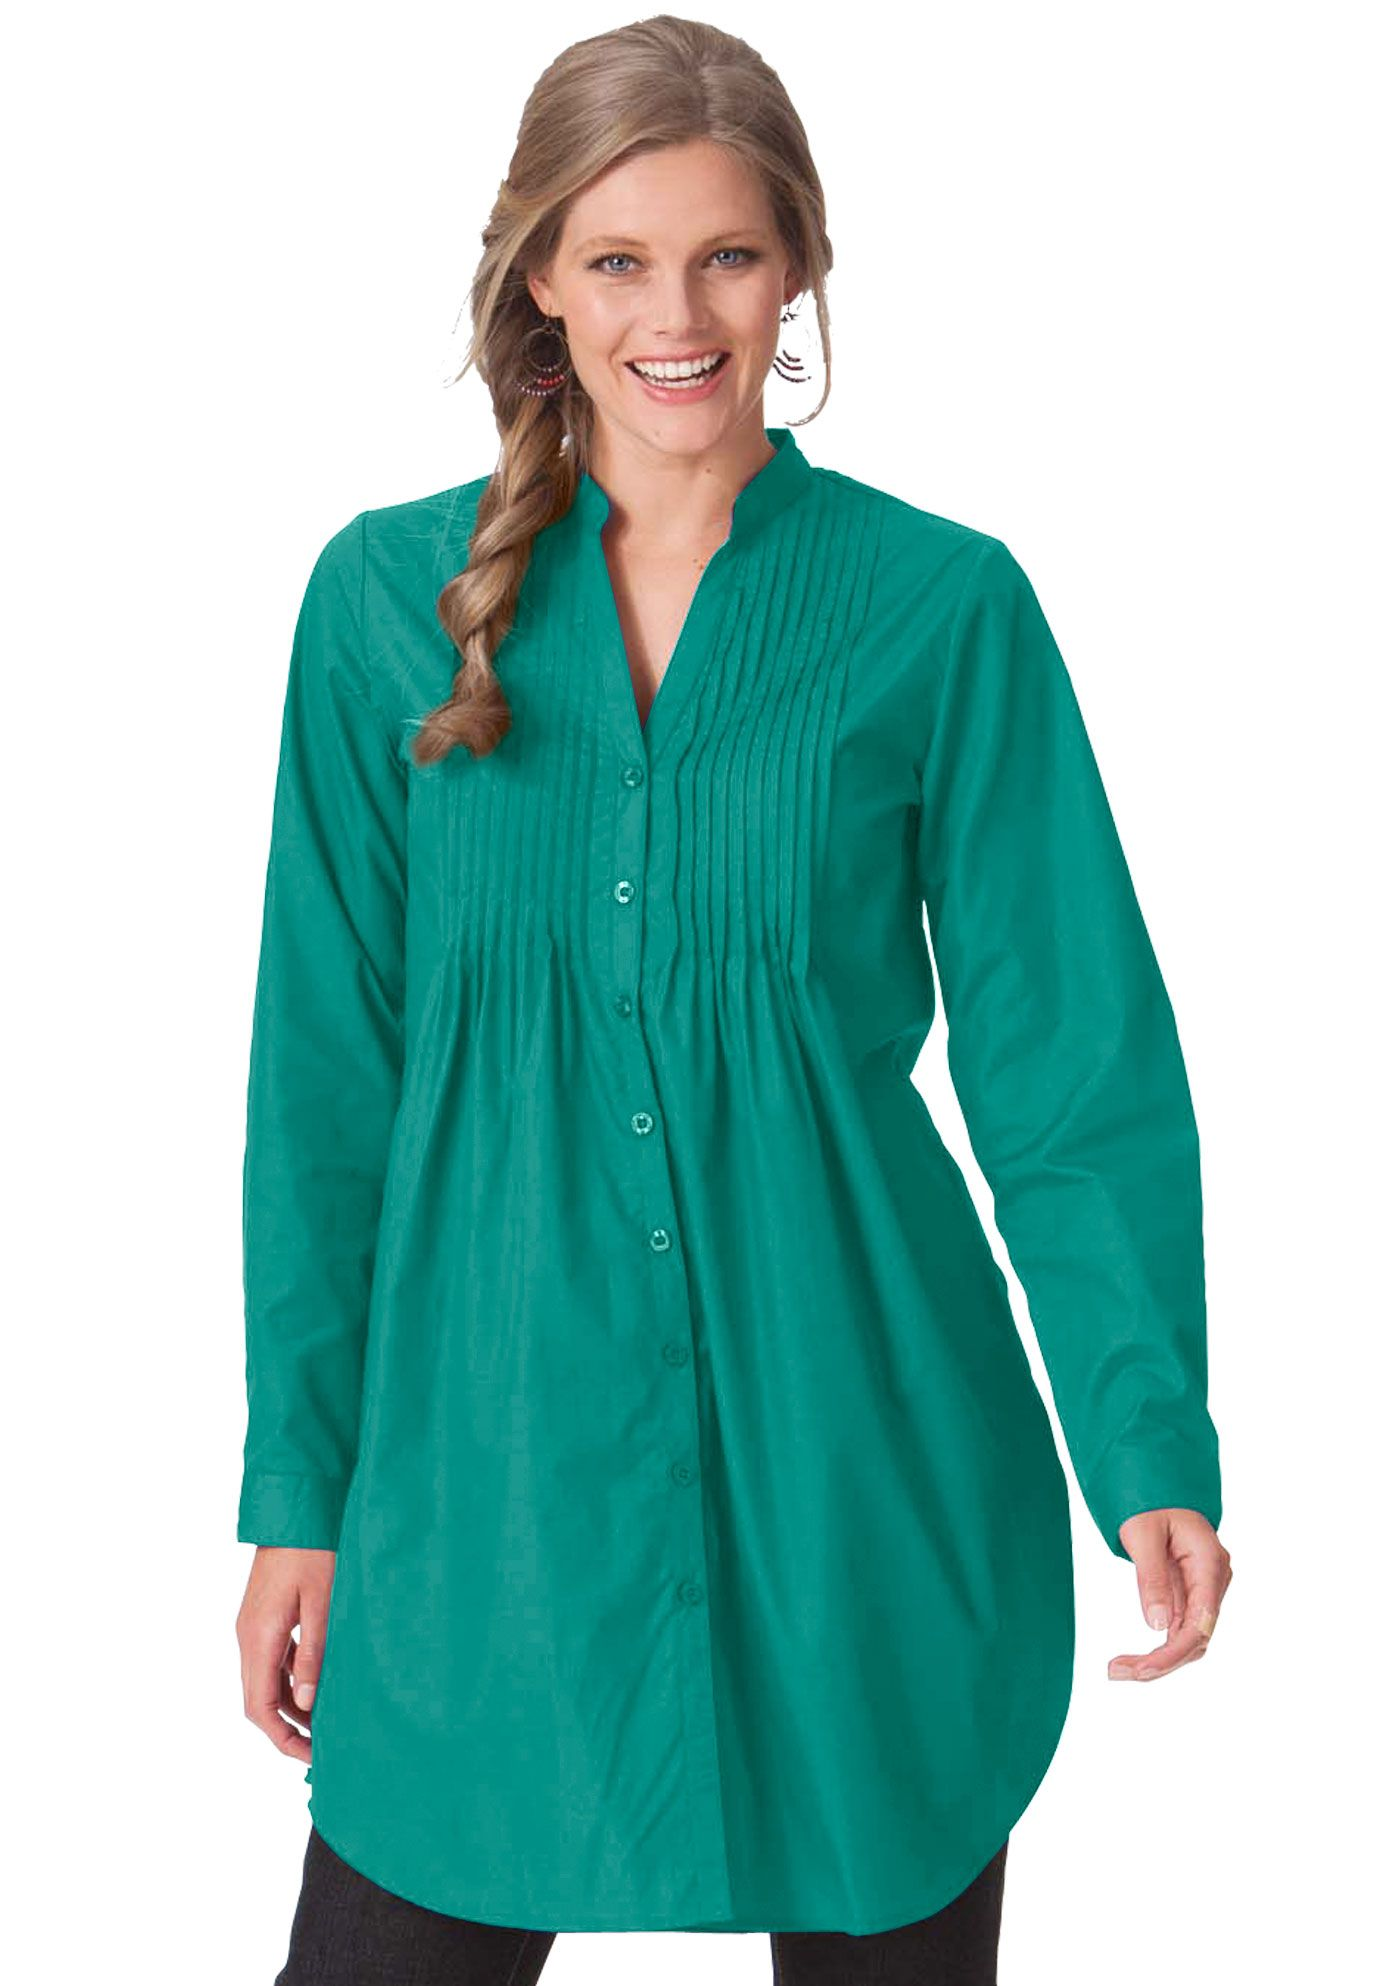 Top In 32 Tunic Length With Pintuck Details Plus Size